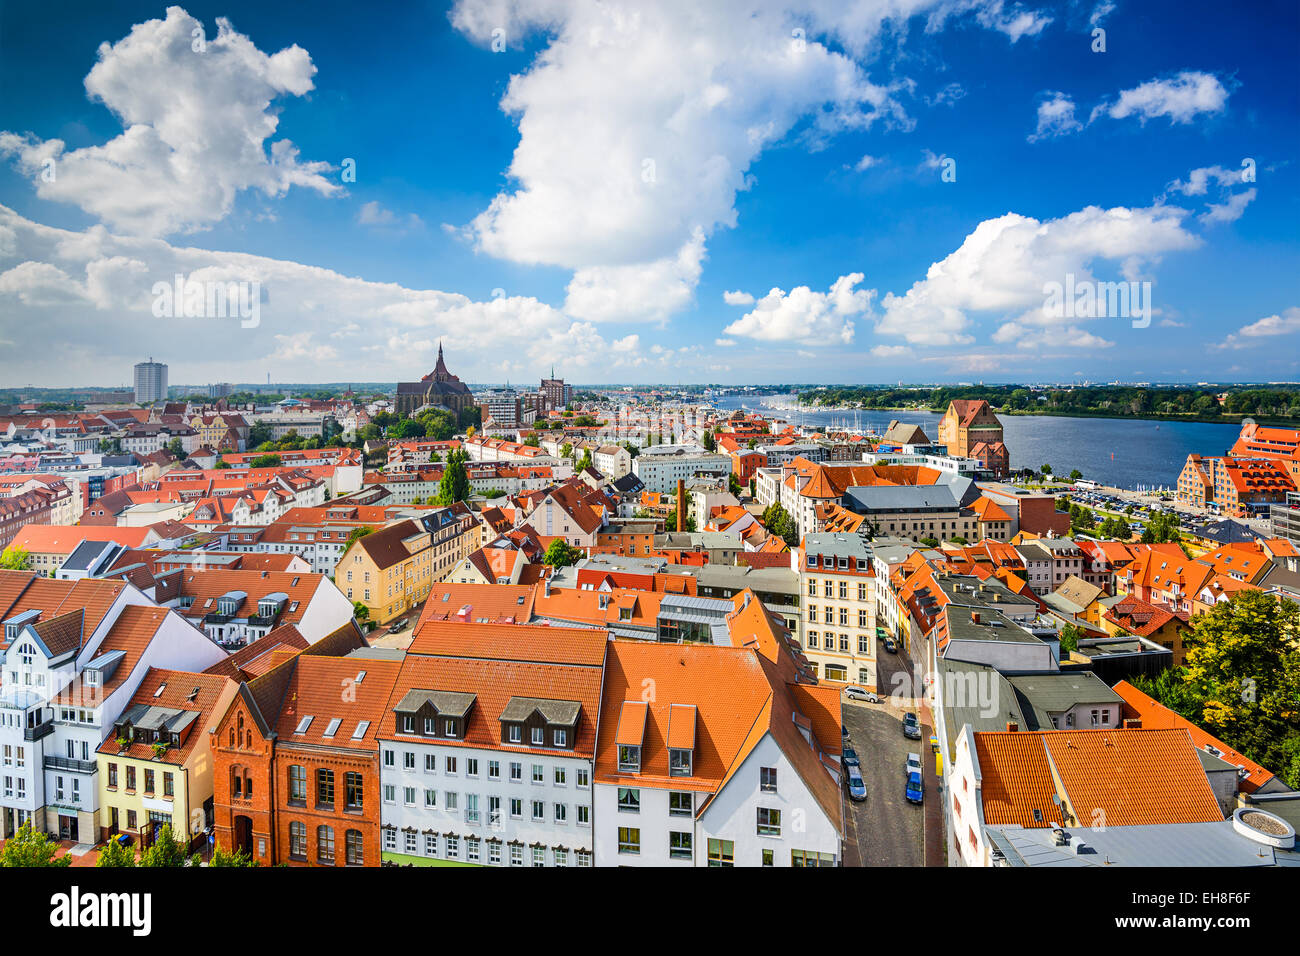 Rostock, Germany old city skyline. - Stock Image